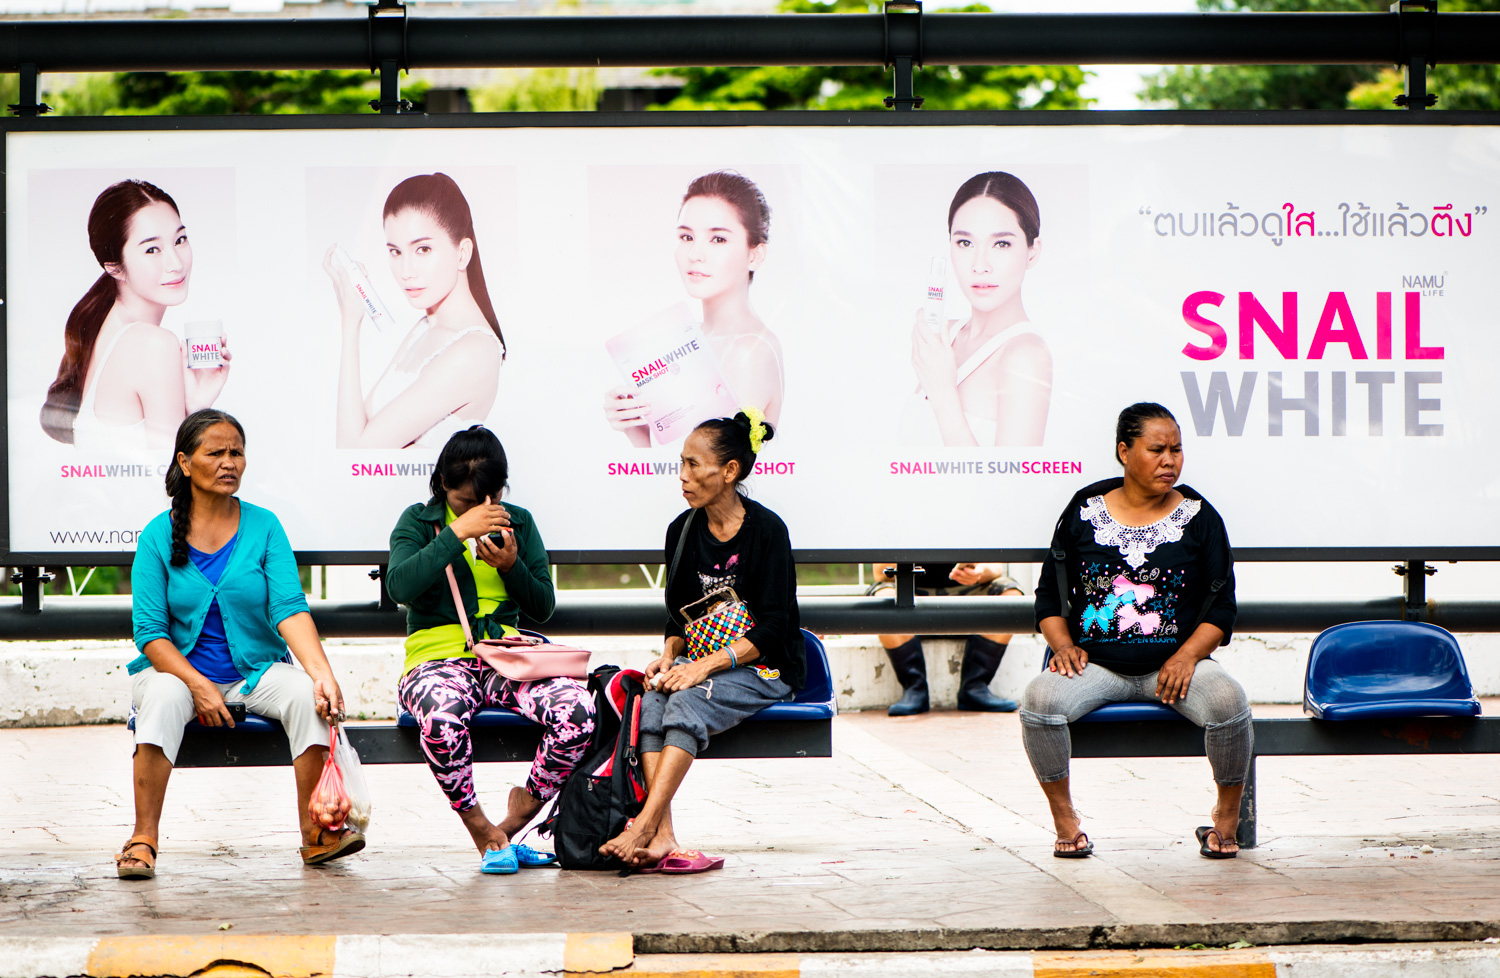 women in a bus stop in Thailand. Photo by Kevin Landwer-Johan (copyright)